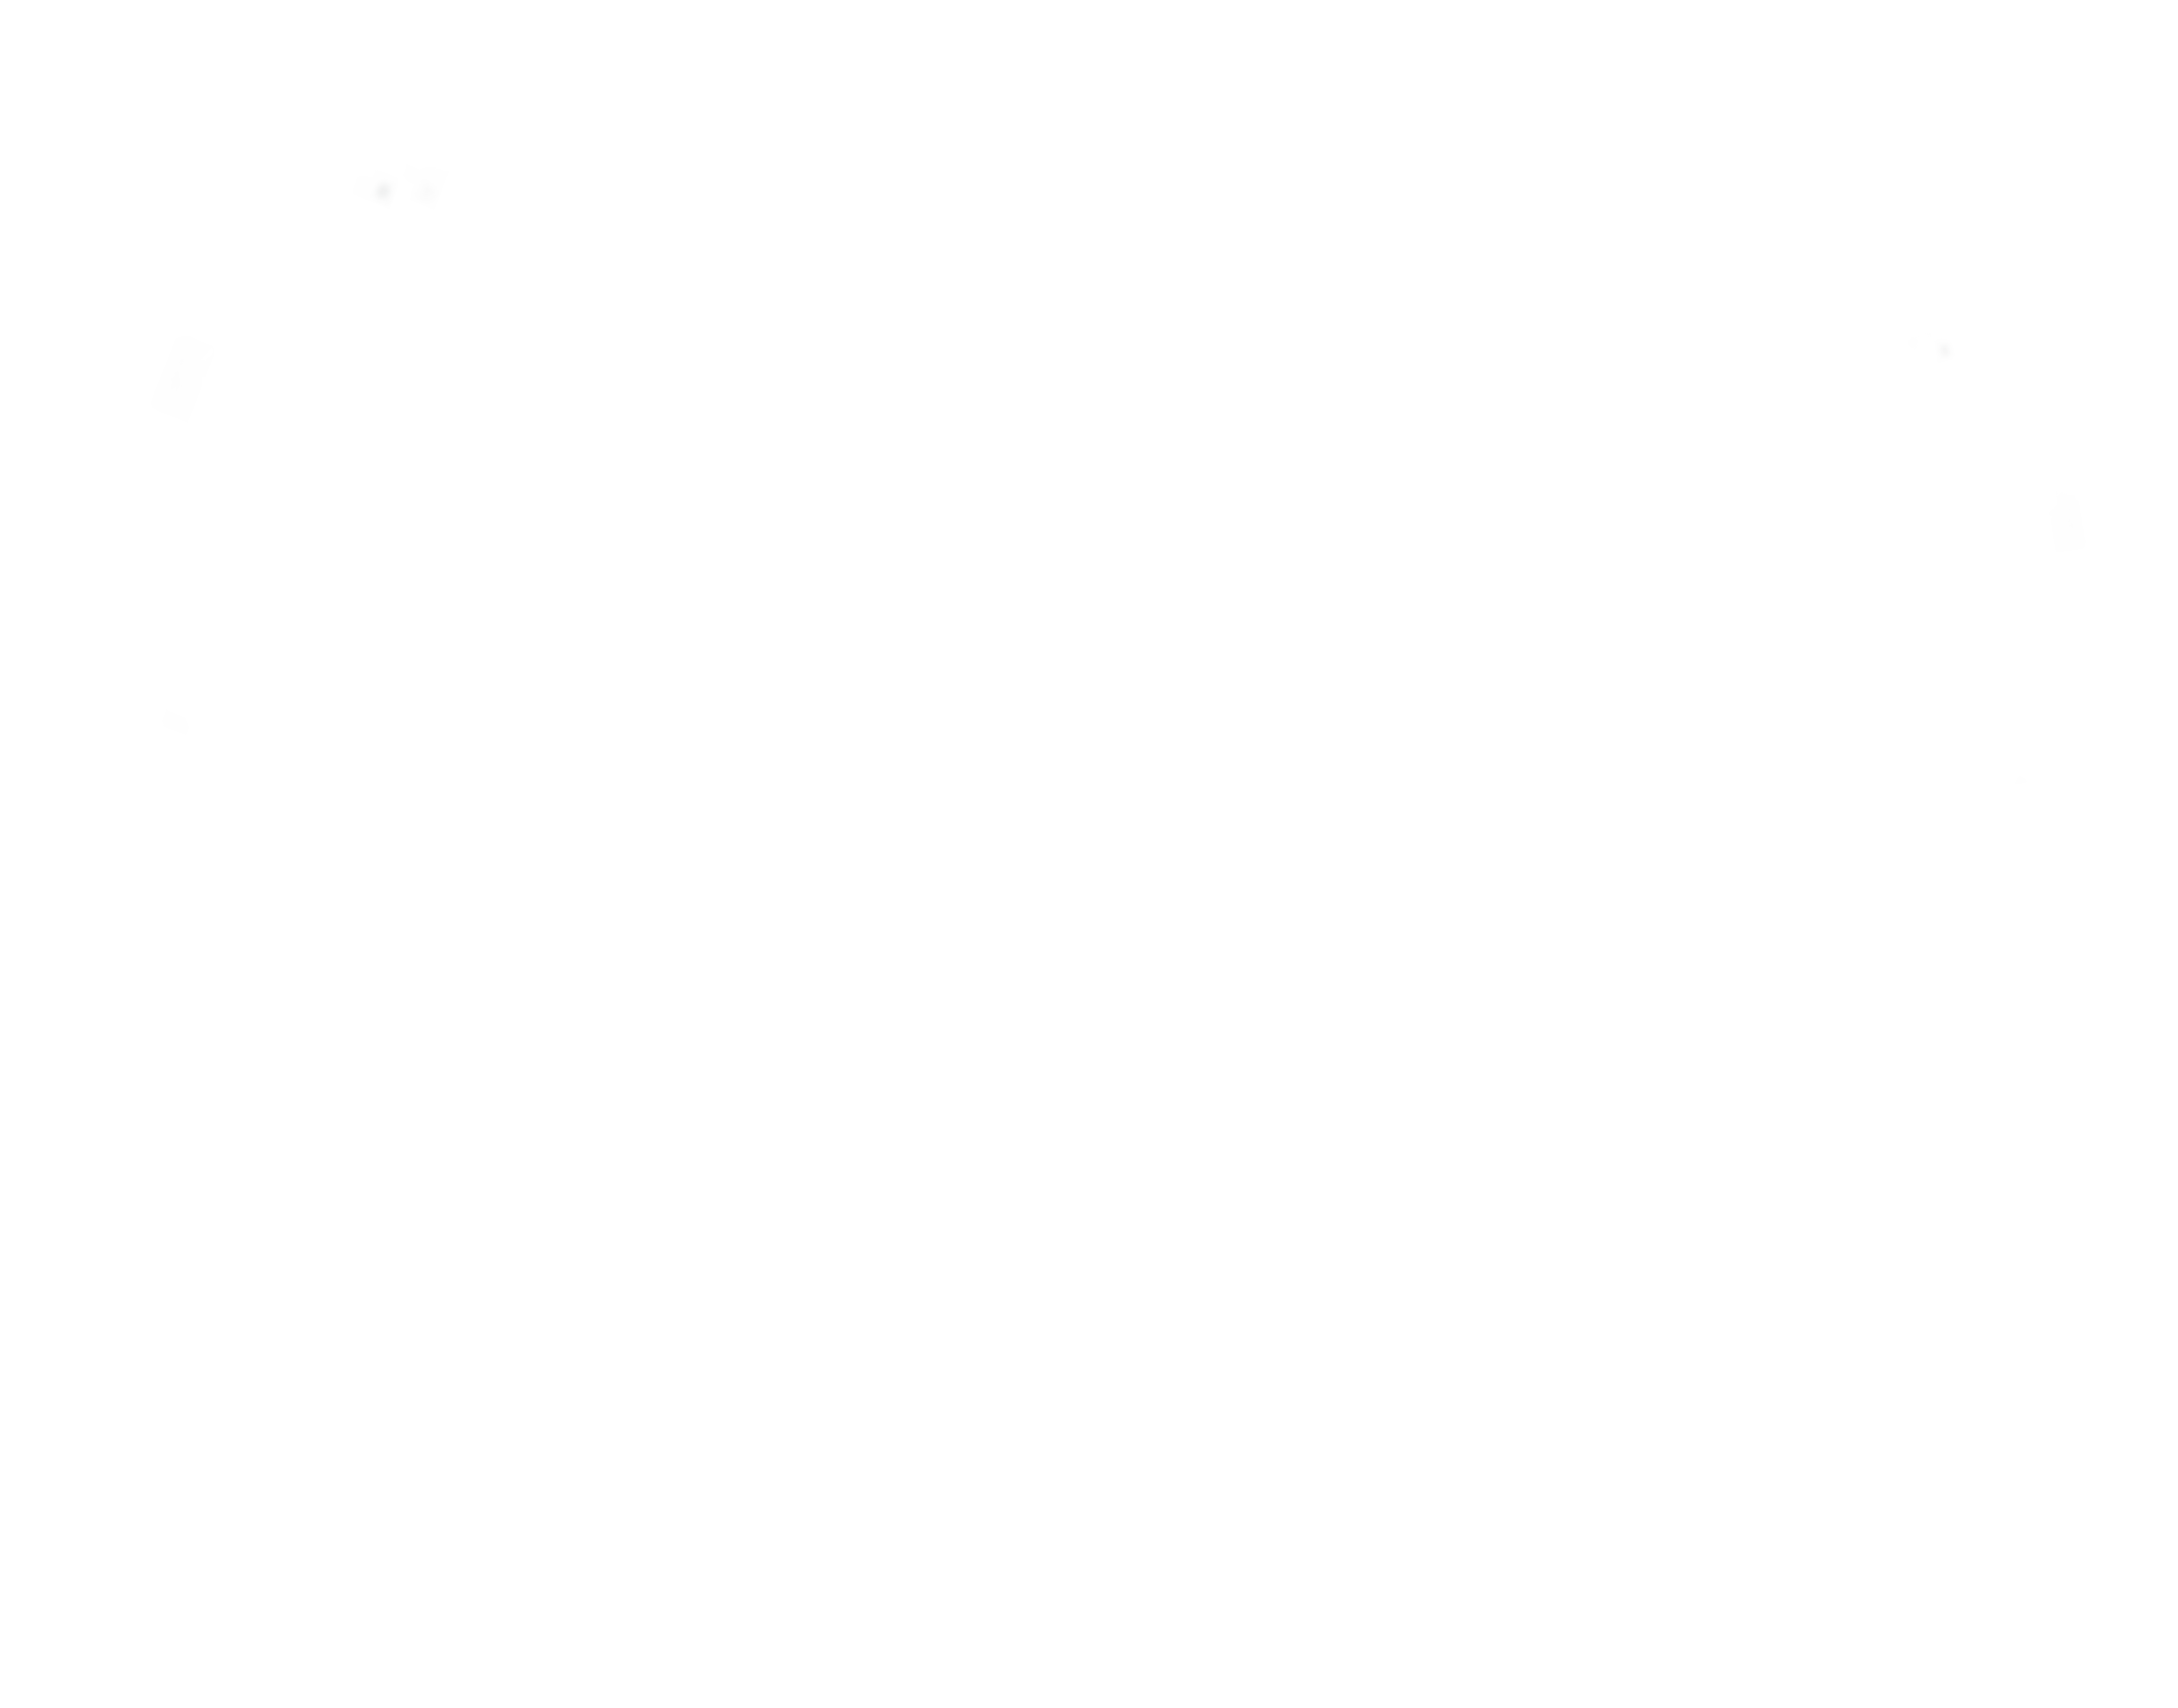 jpg freeuse library Png clip art image. Cloud clipart heart.